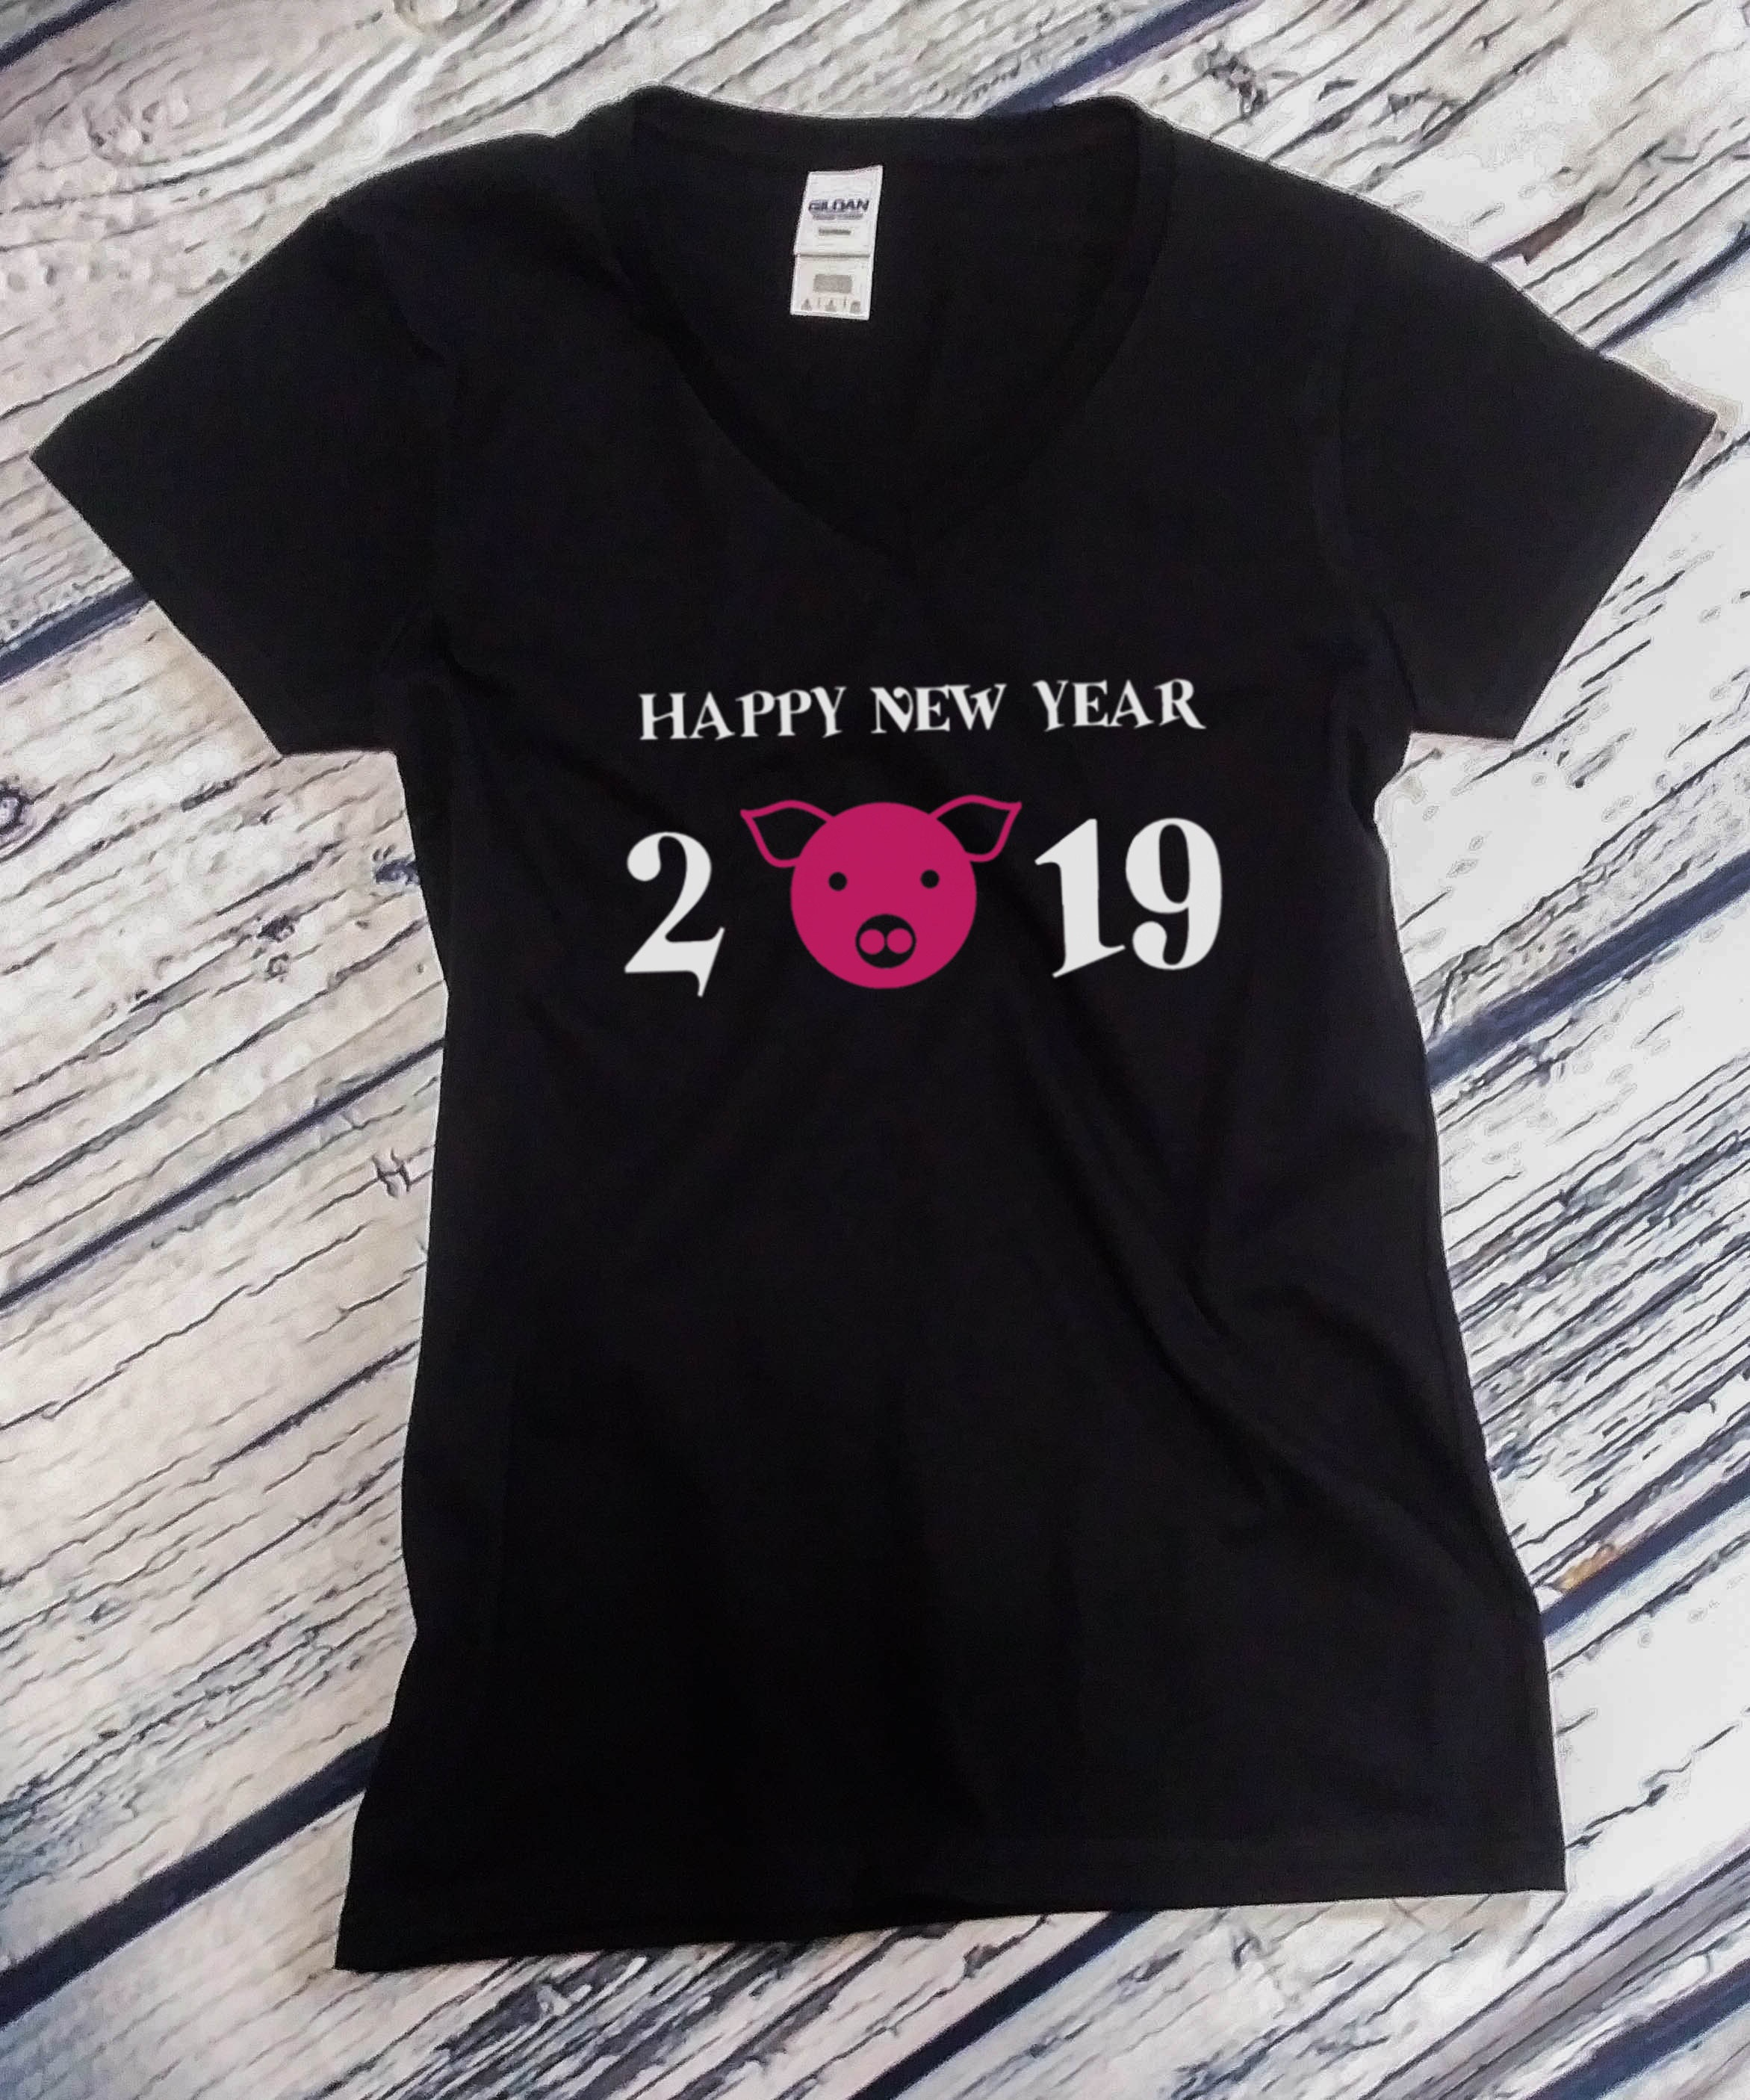 97816a04 ... Chinese Zodiac T Shirt - Year Of The Pig Tee T-shirt - Gift. gallery  photo ...